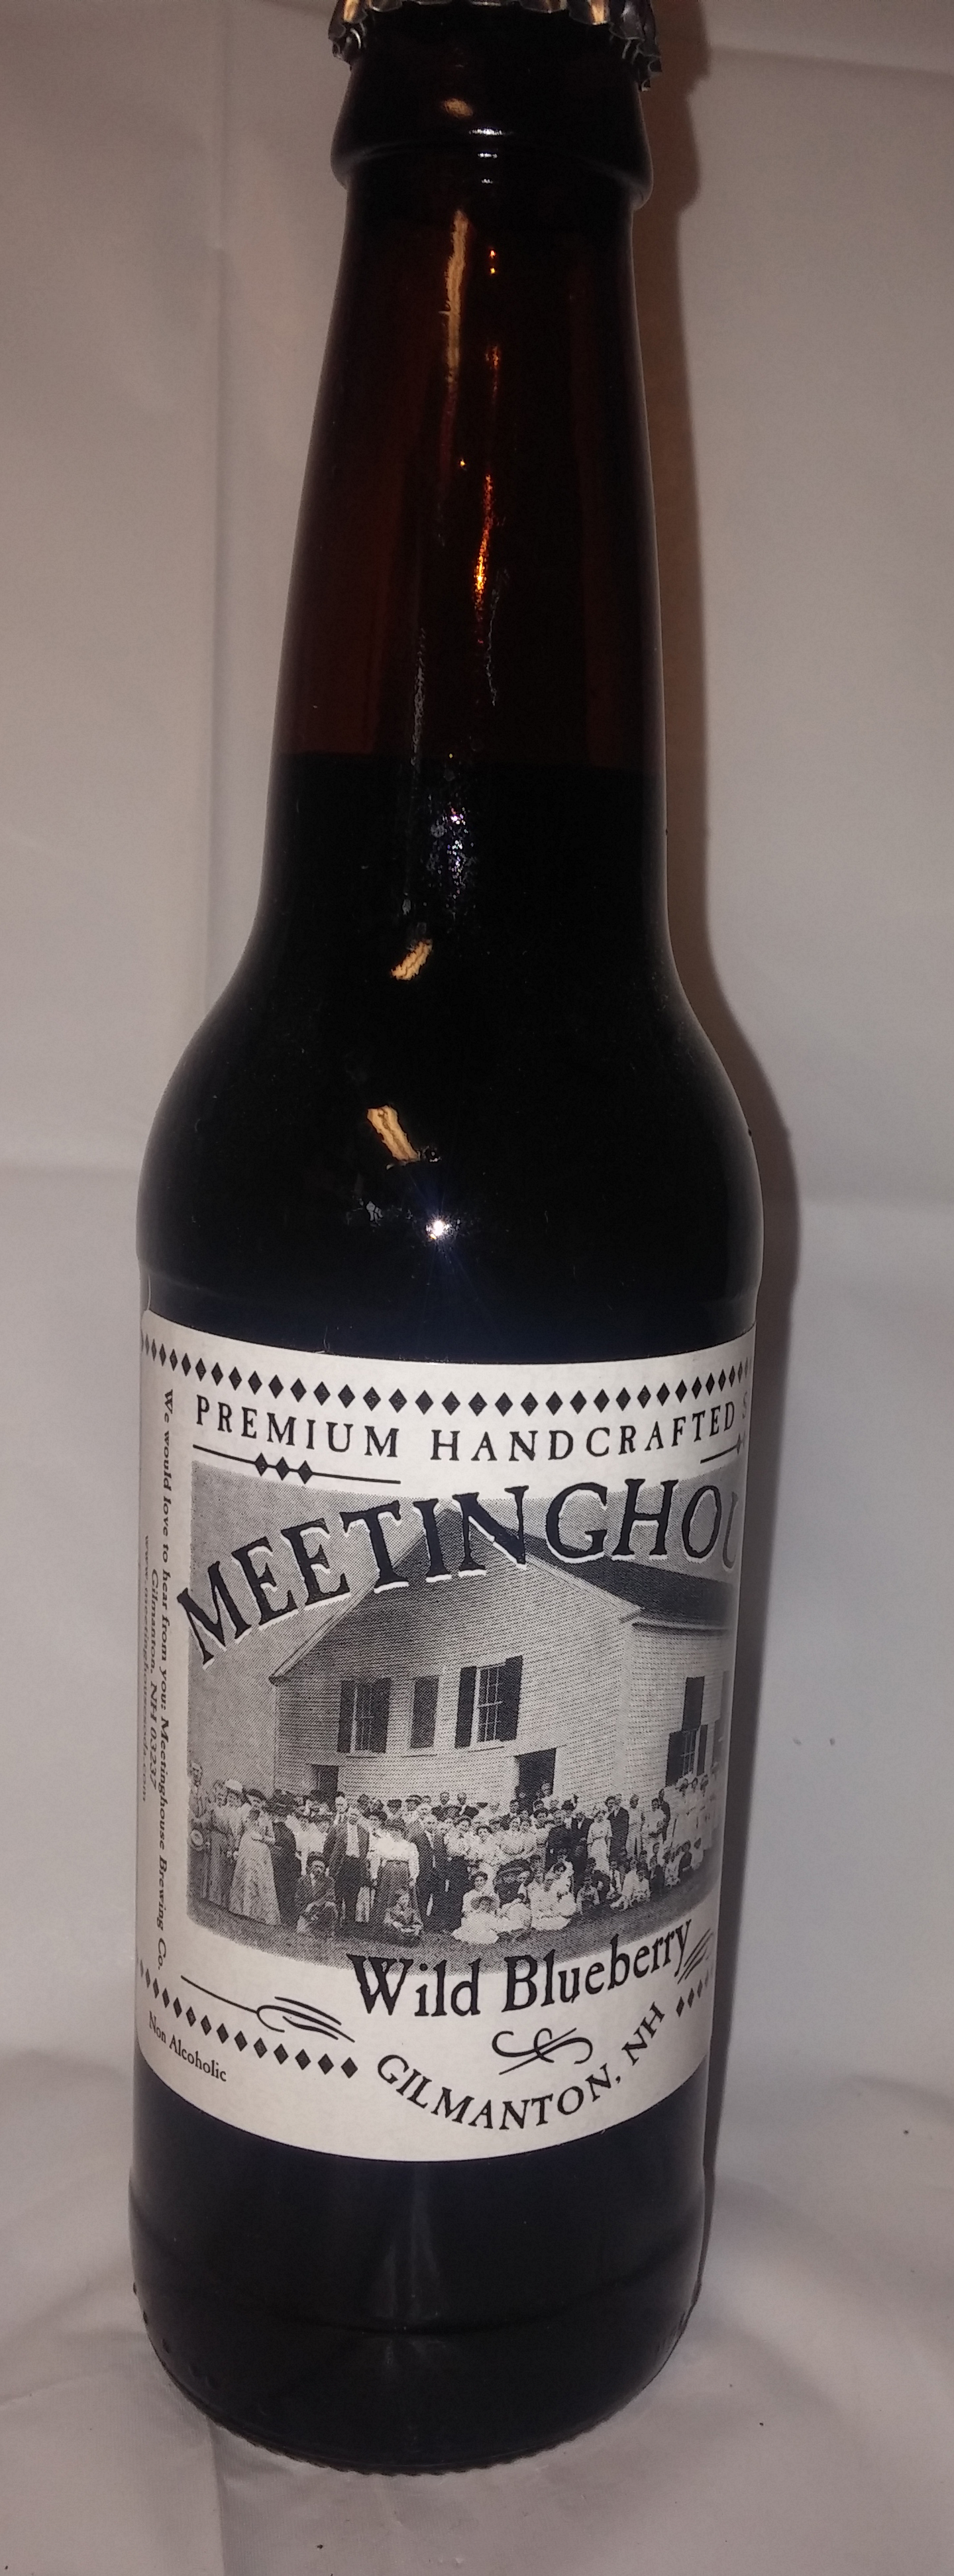 Meetinghouse Hand Crafted Sodas